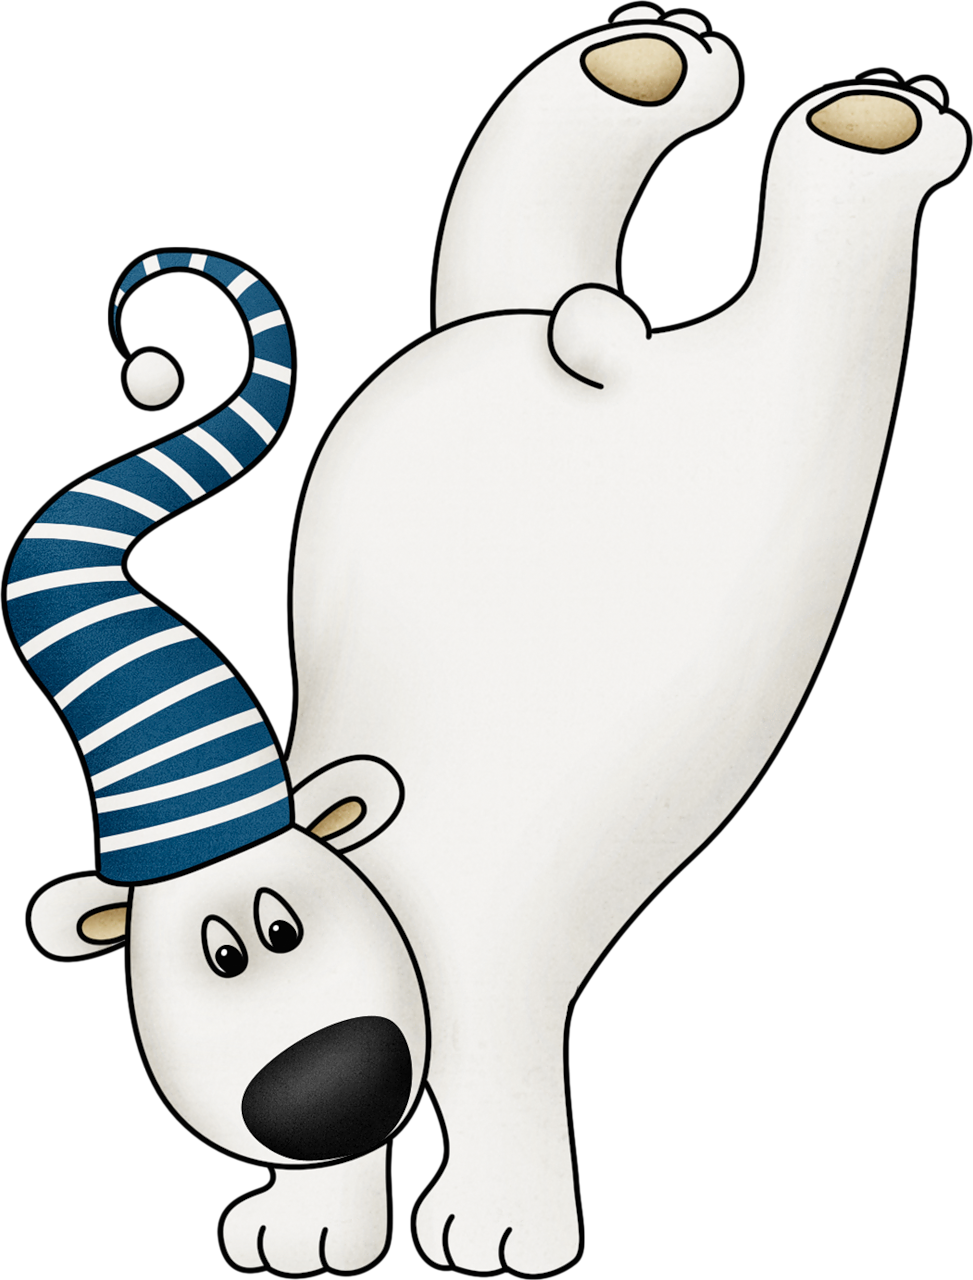 Polar express clipart line drawing. Cute winter bear clip